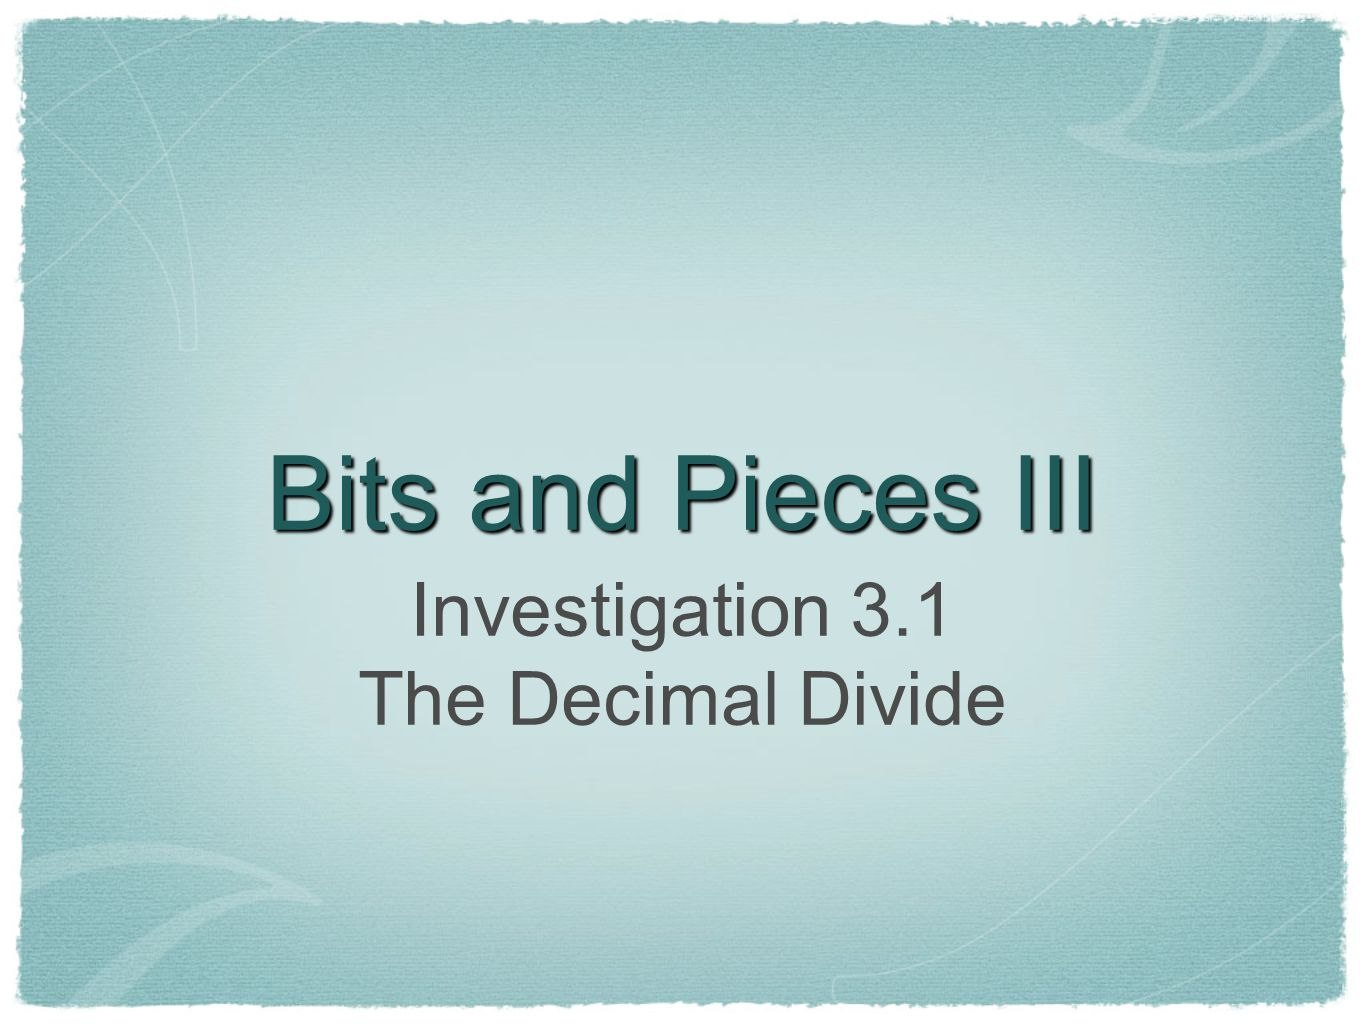 Bits and Pieces III Investigation 3.1 The Decimal Divide